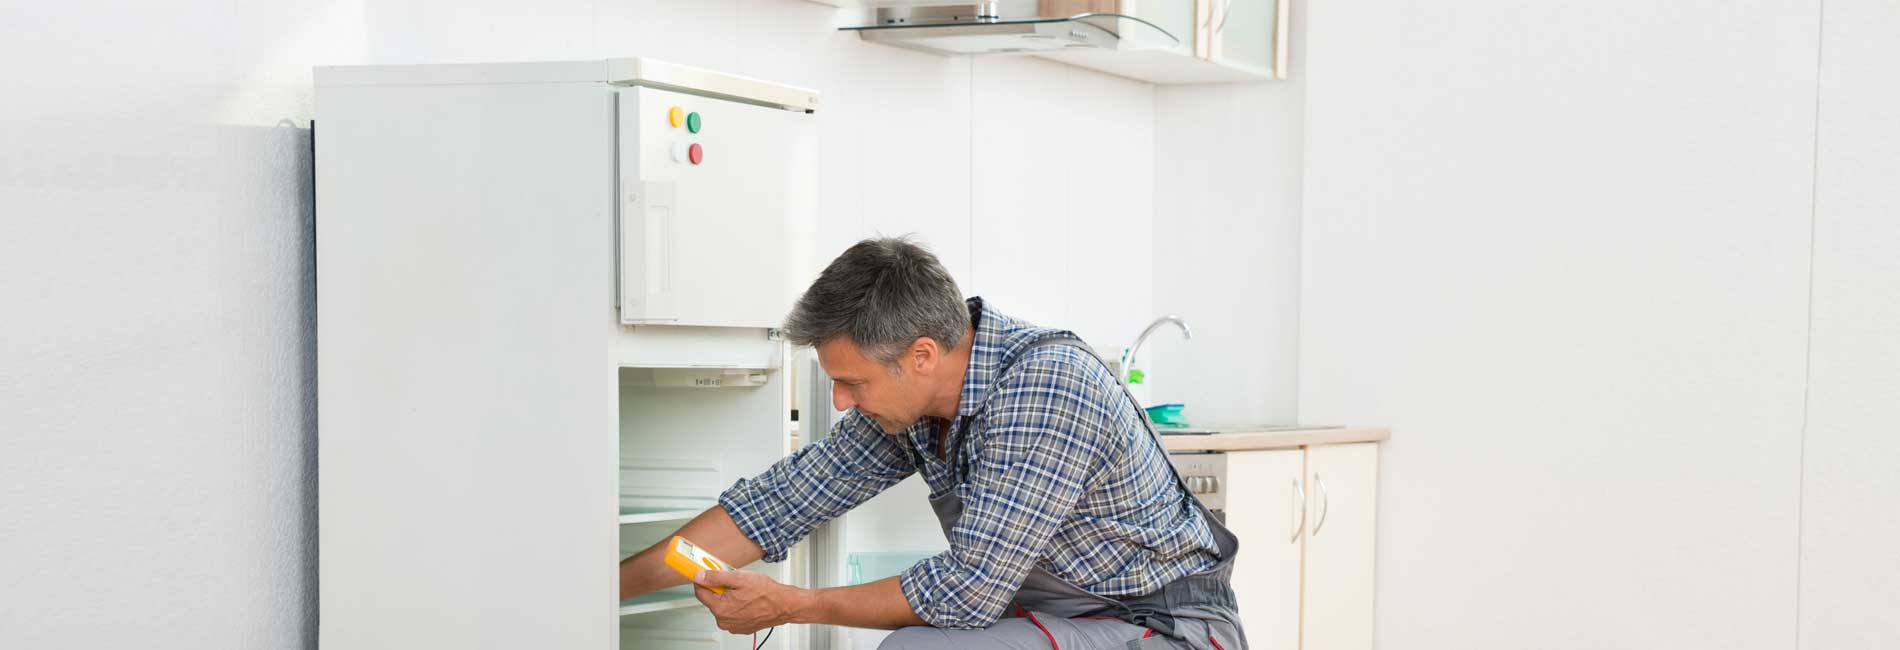 Refrigerator Repair in Mambakkam